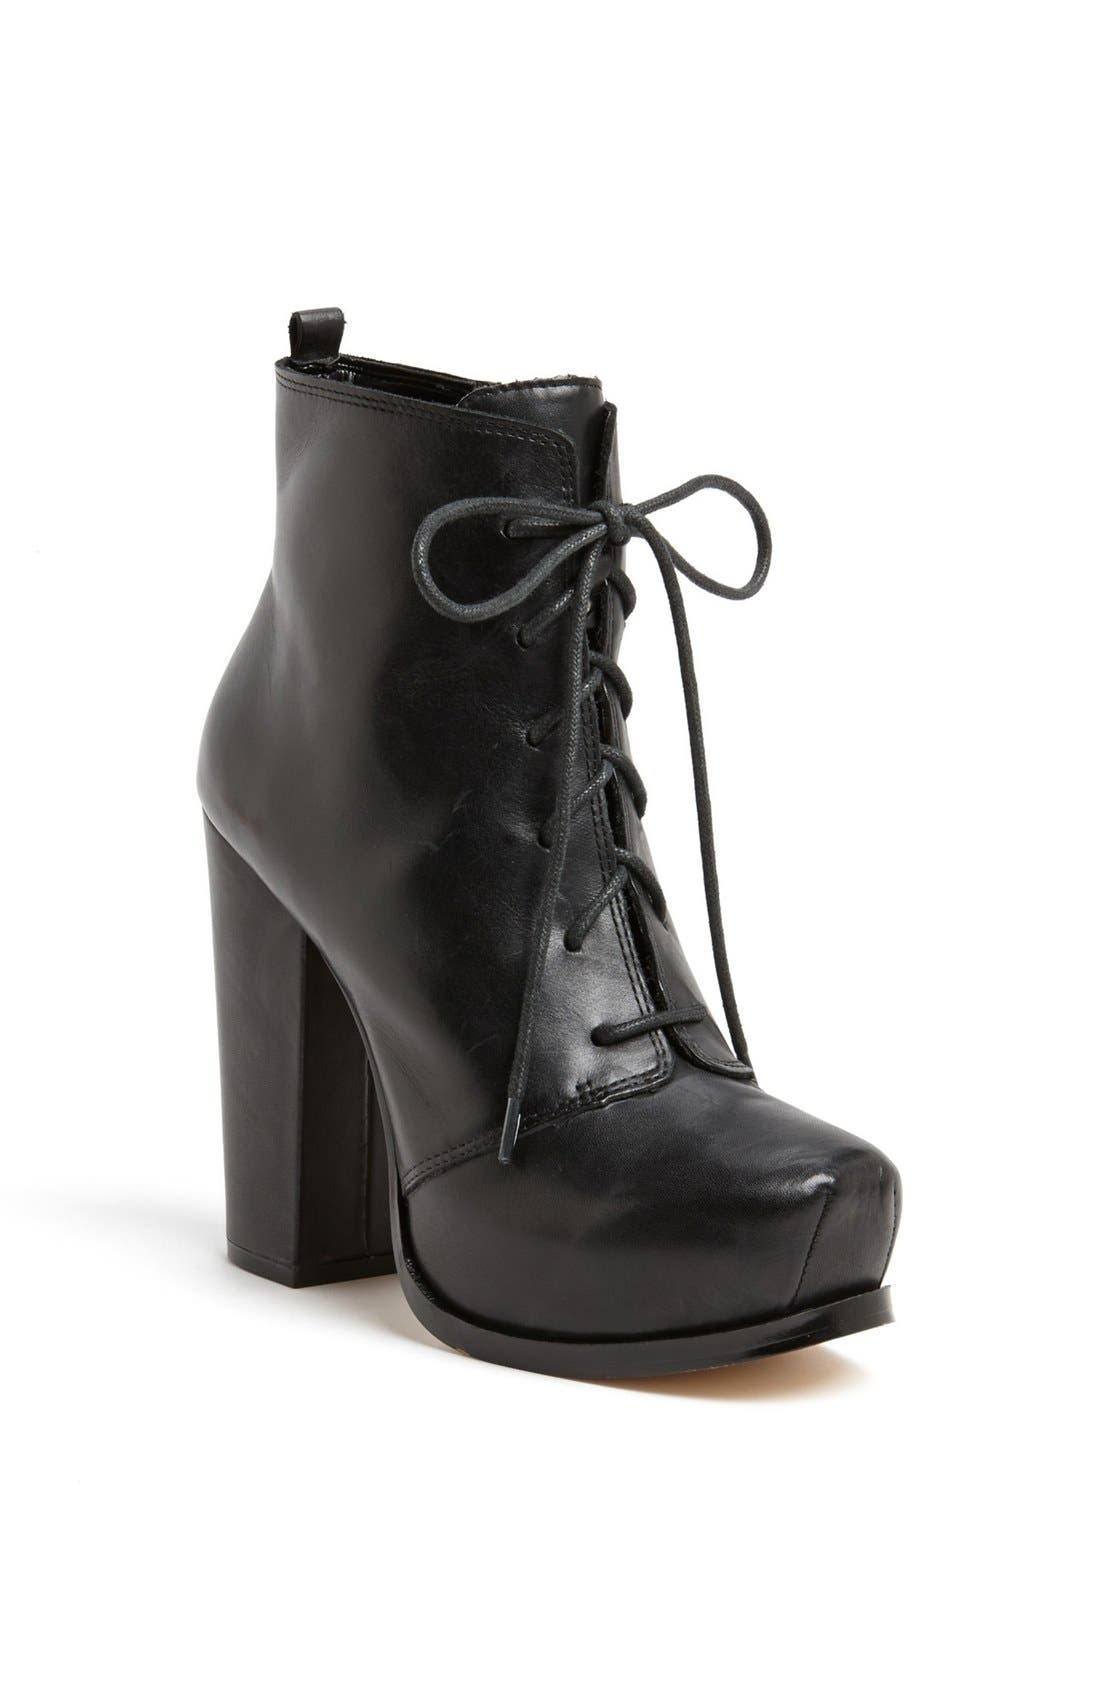 Alternate Image 1 Selected - BCBGeneration 'Ithaka' Platform Bootie